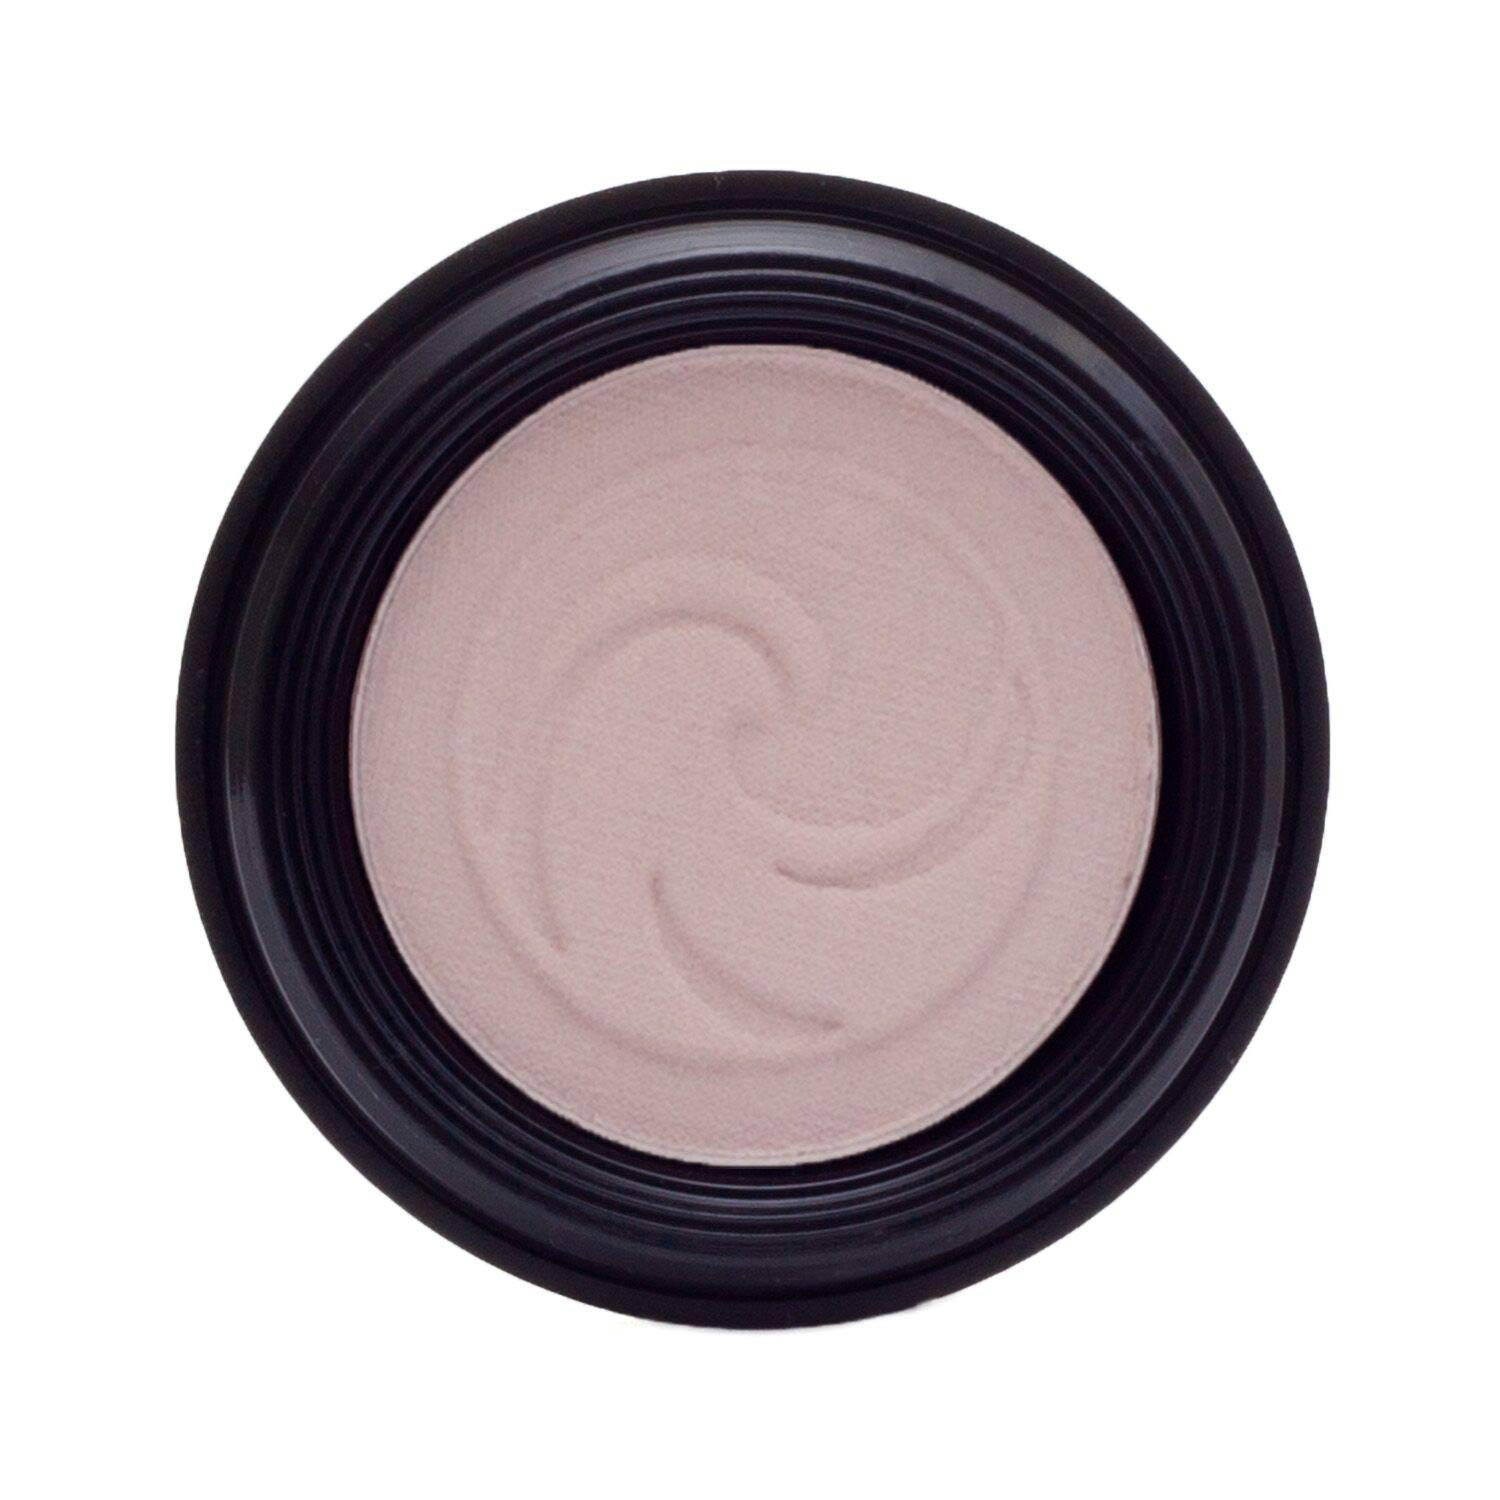 Gabriel Cosmetics Eyeshadow (Dove), 0.07 oz,Natural, Paraben Free, Vegan,Gluten free,Cruelty free,No GMO,Velvety and Smooth matte finish, with Sea Fennel,for all skin types